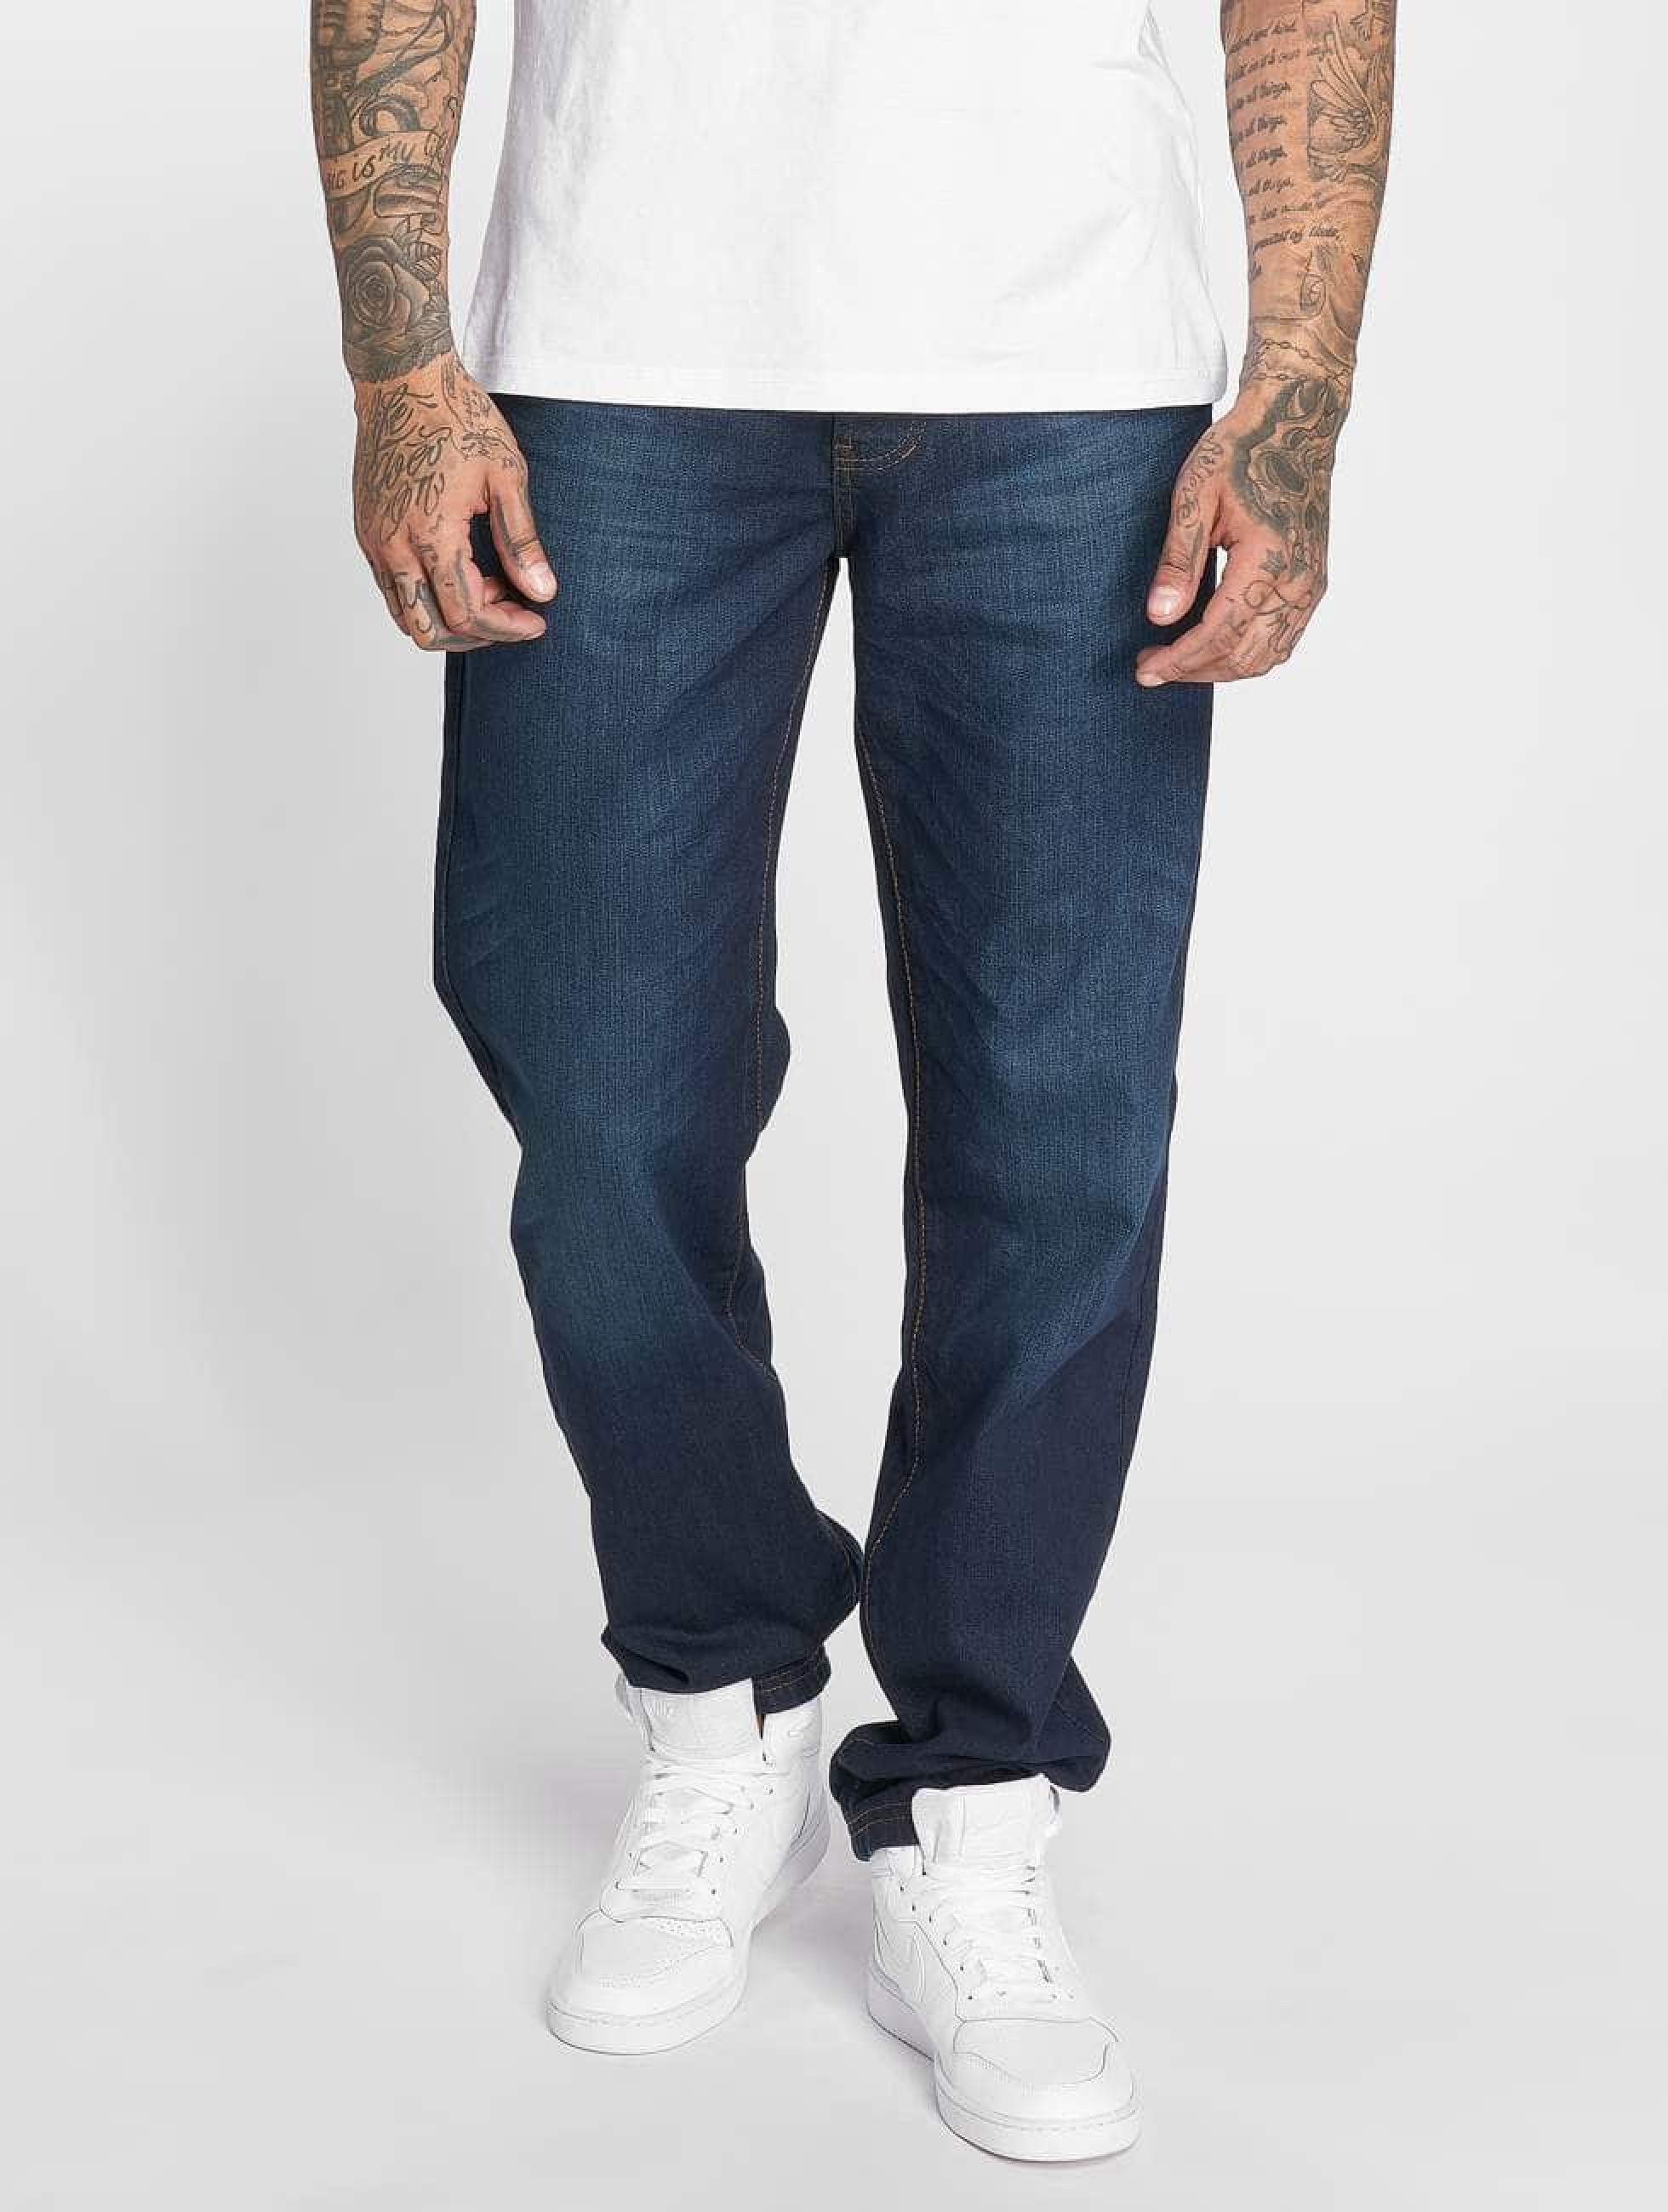 Thug Life / Carrot Fit Jeans B . Denim in blue W 32 L 32